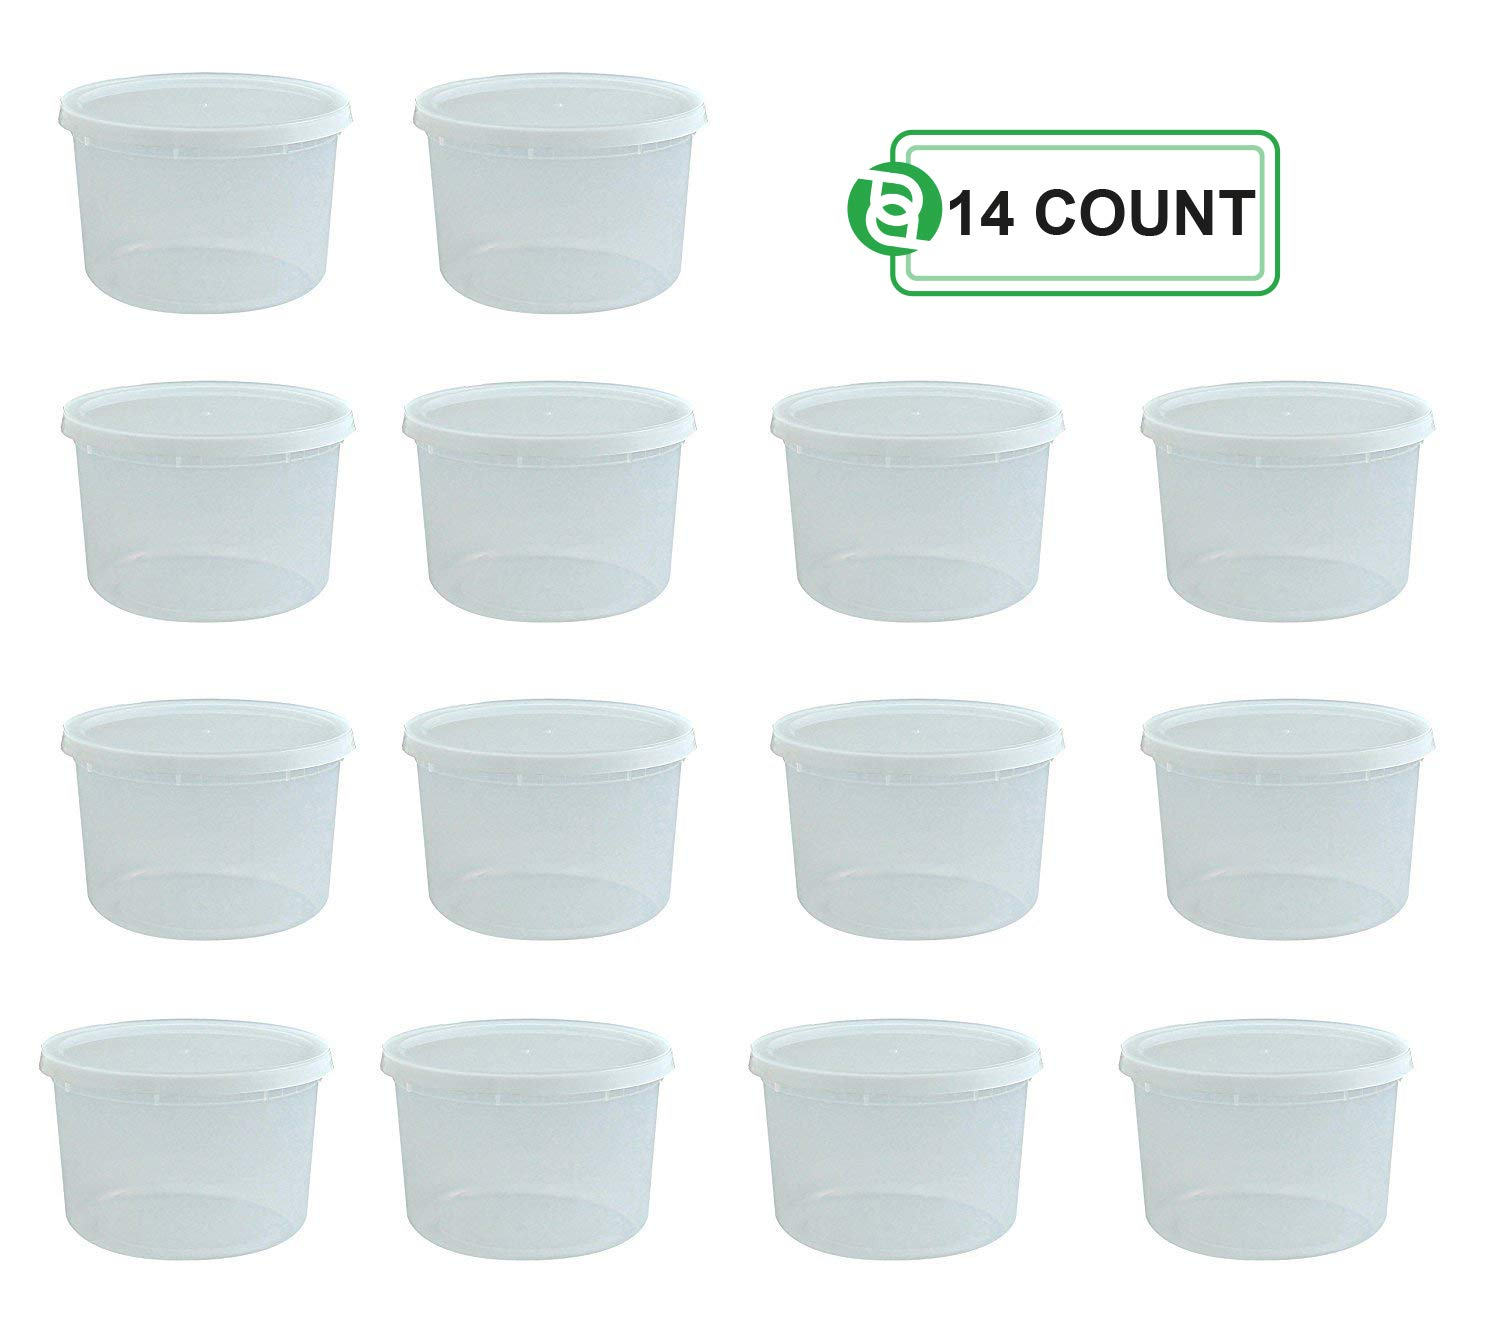 Party Bargains Storage Containers with Lids, Size: 64 oz (Half Gallon), Count: Pack of 14